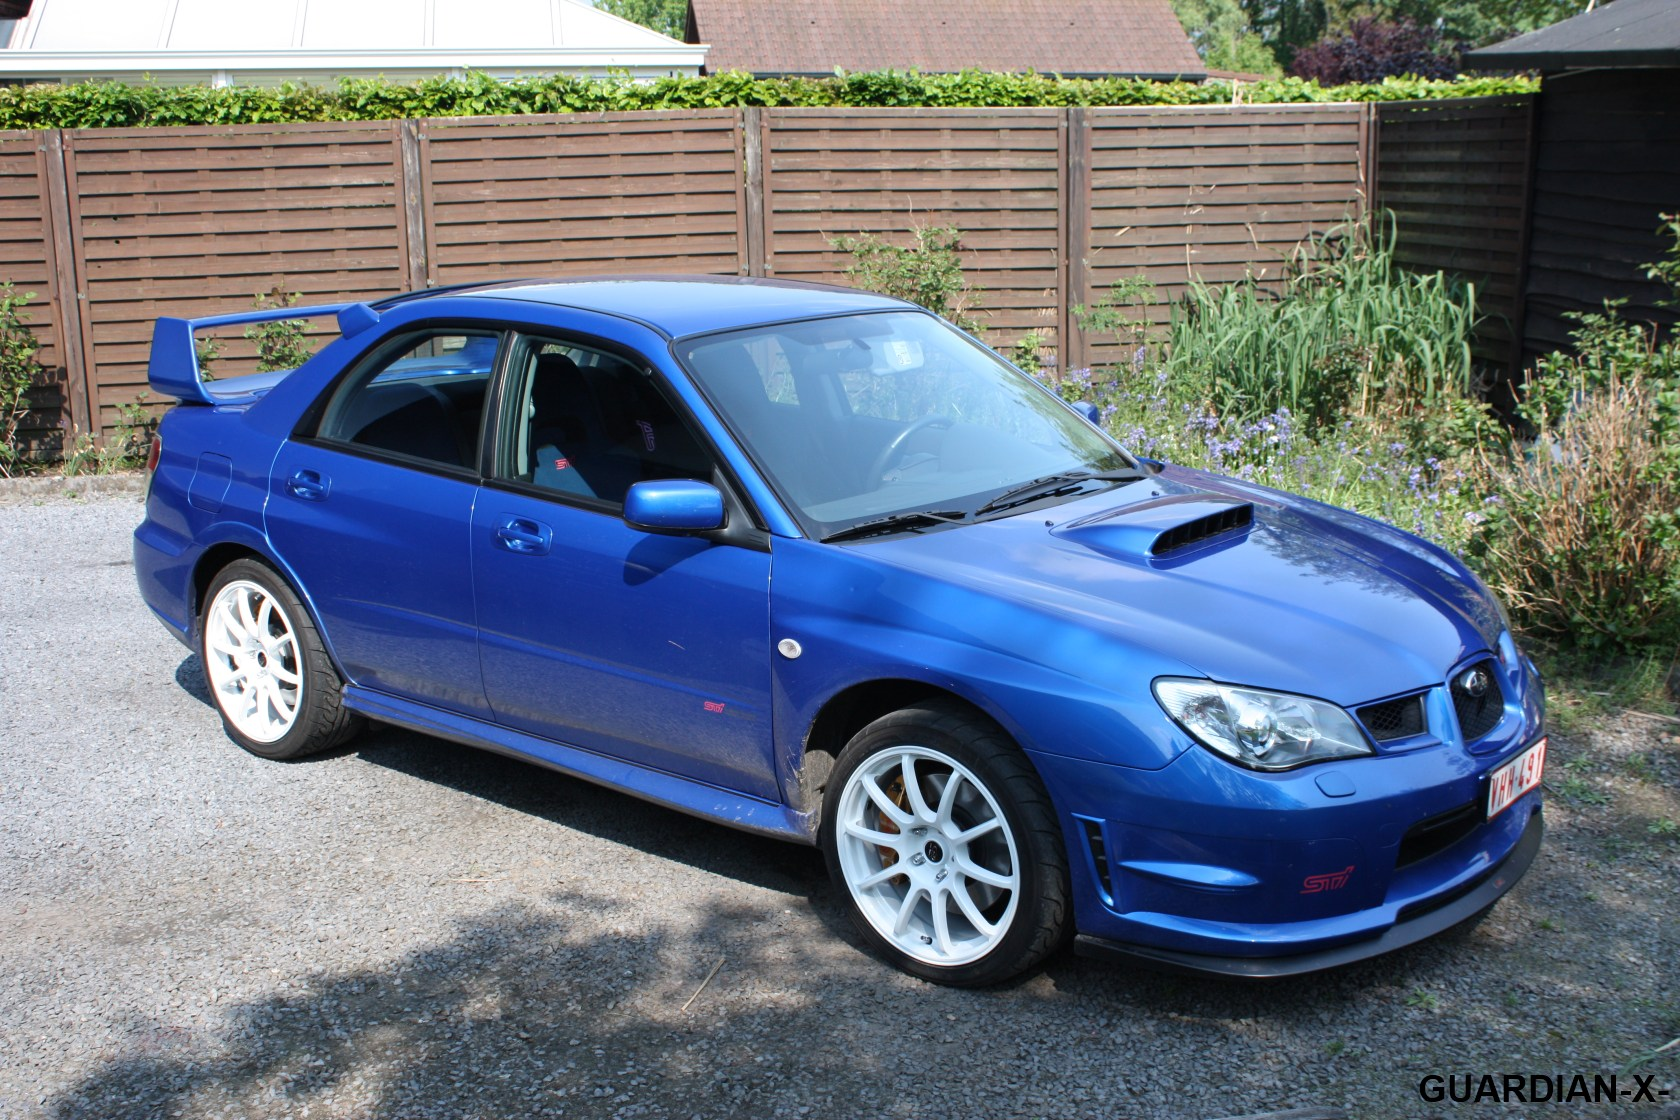 Guardian-X-'s 06' STi Still in the shed though not parted way's yet-gforce1-jpg